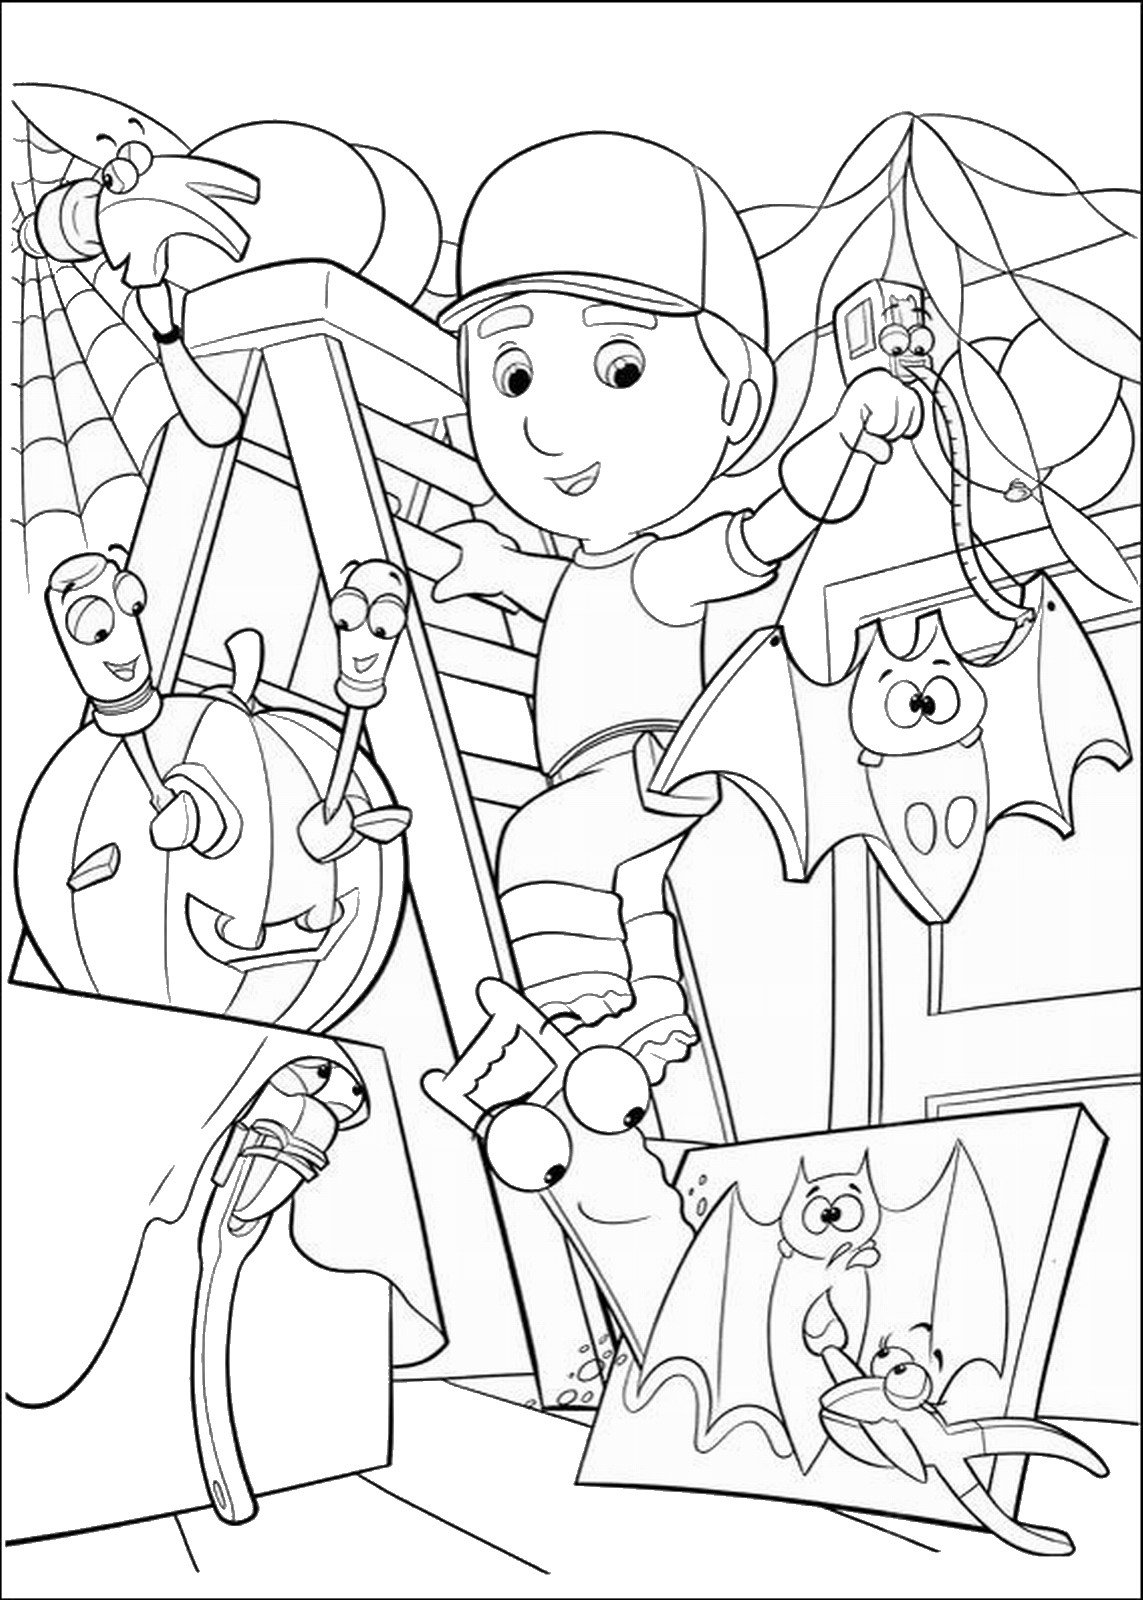 Handy Manny Coloring Pages – NEO Coloring